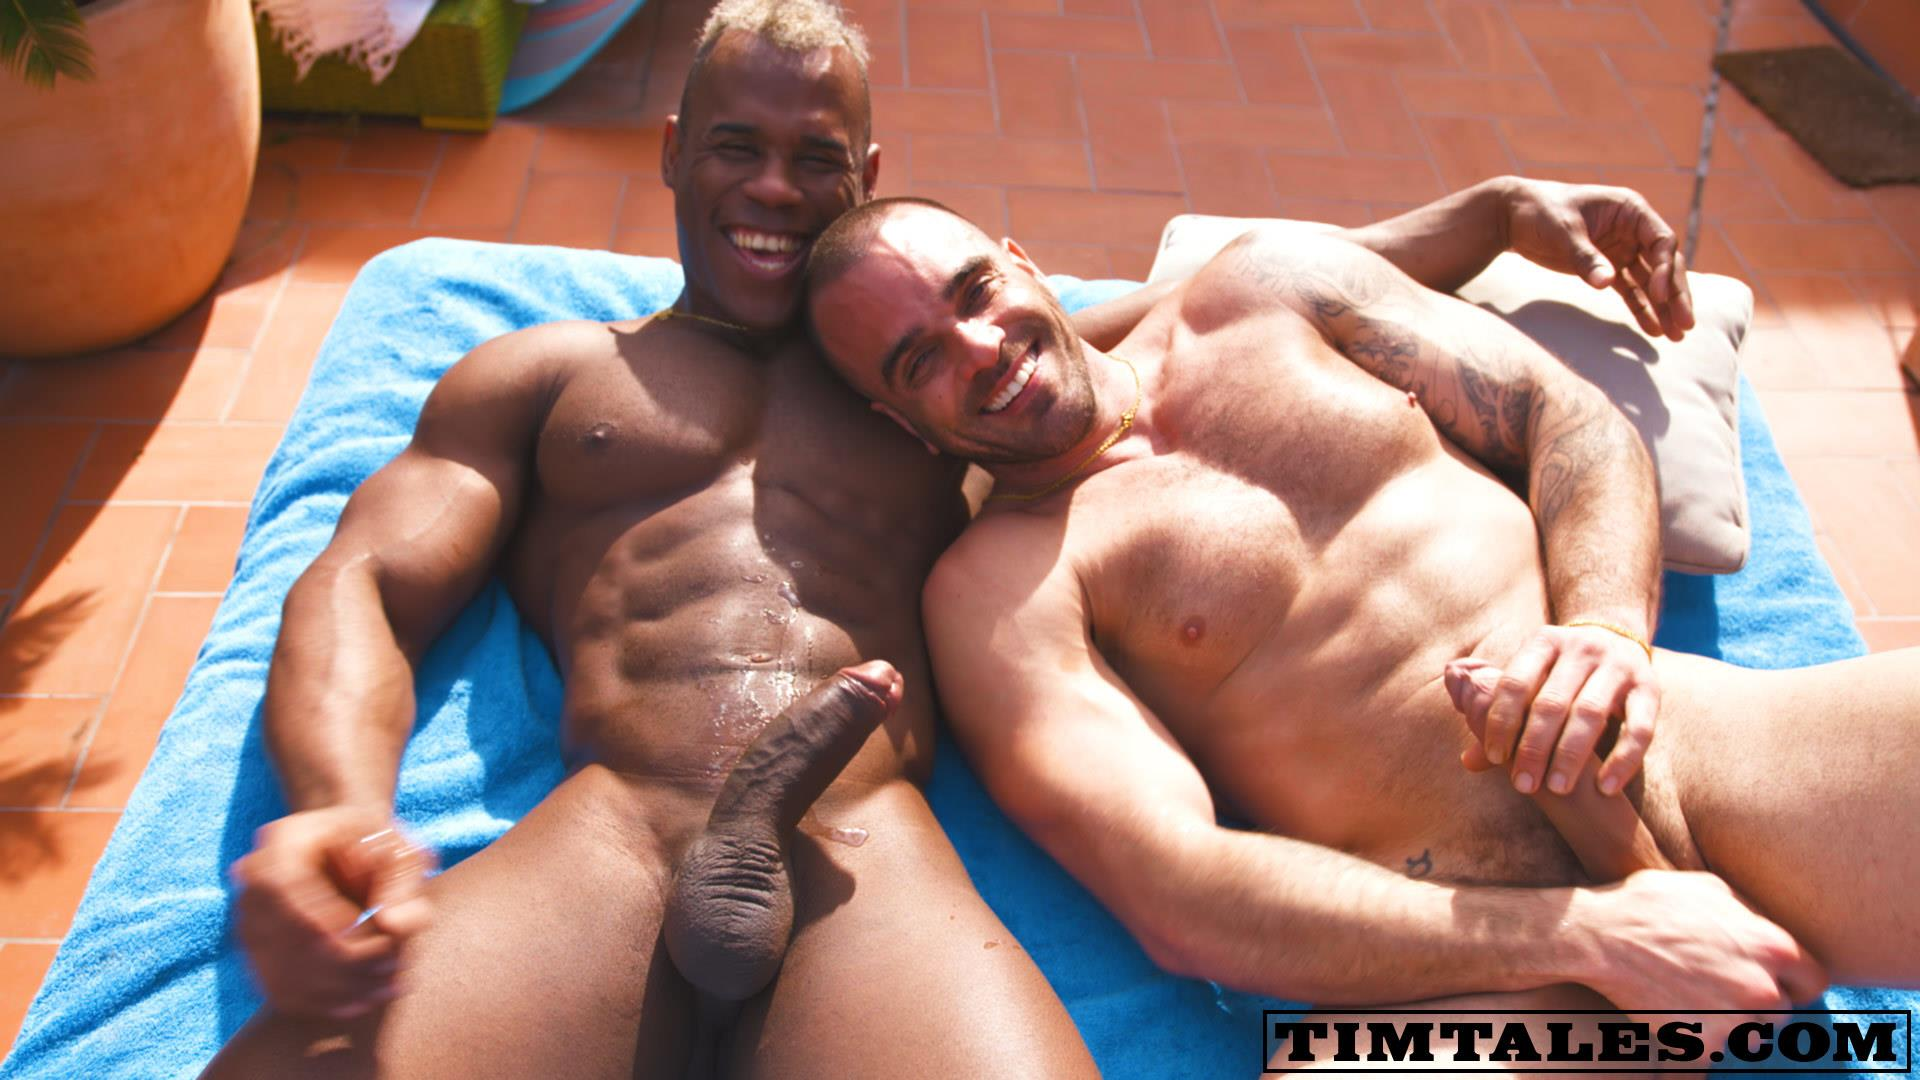 TimTales-Ridder-Rivera-and-Damien-Crosse-Big-Uncut-Cuban-Cock-Gay-Bareback-Sex-Video-32 TimTales: Ridder Rivera Barebacking Damien Crosse With His Big Uncut Cock